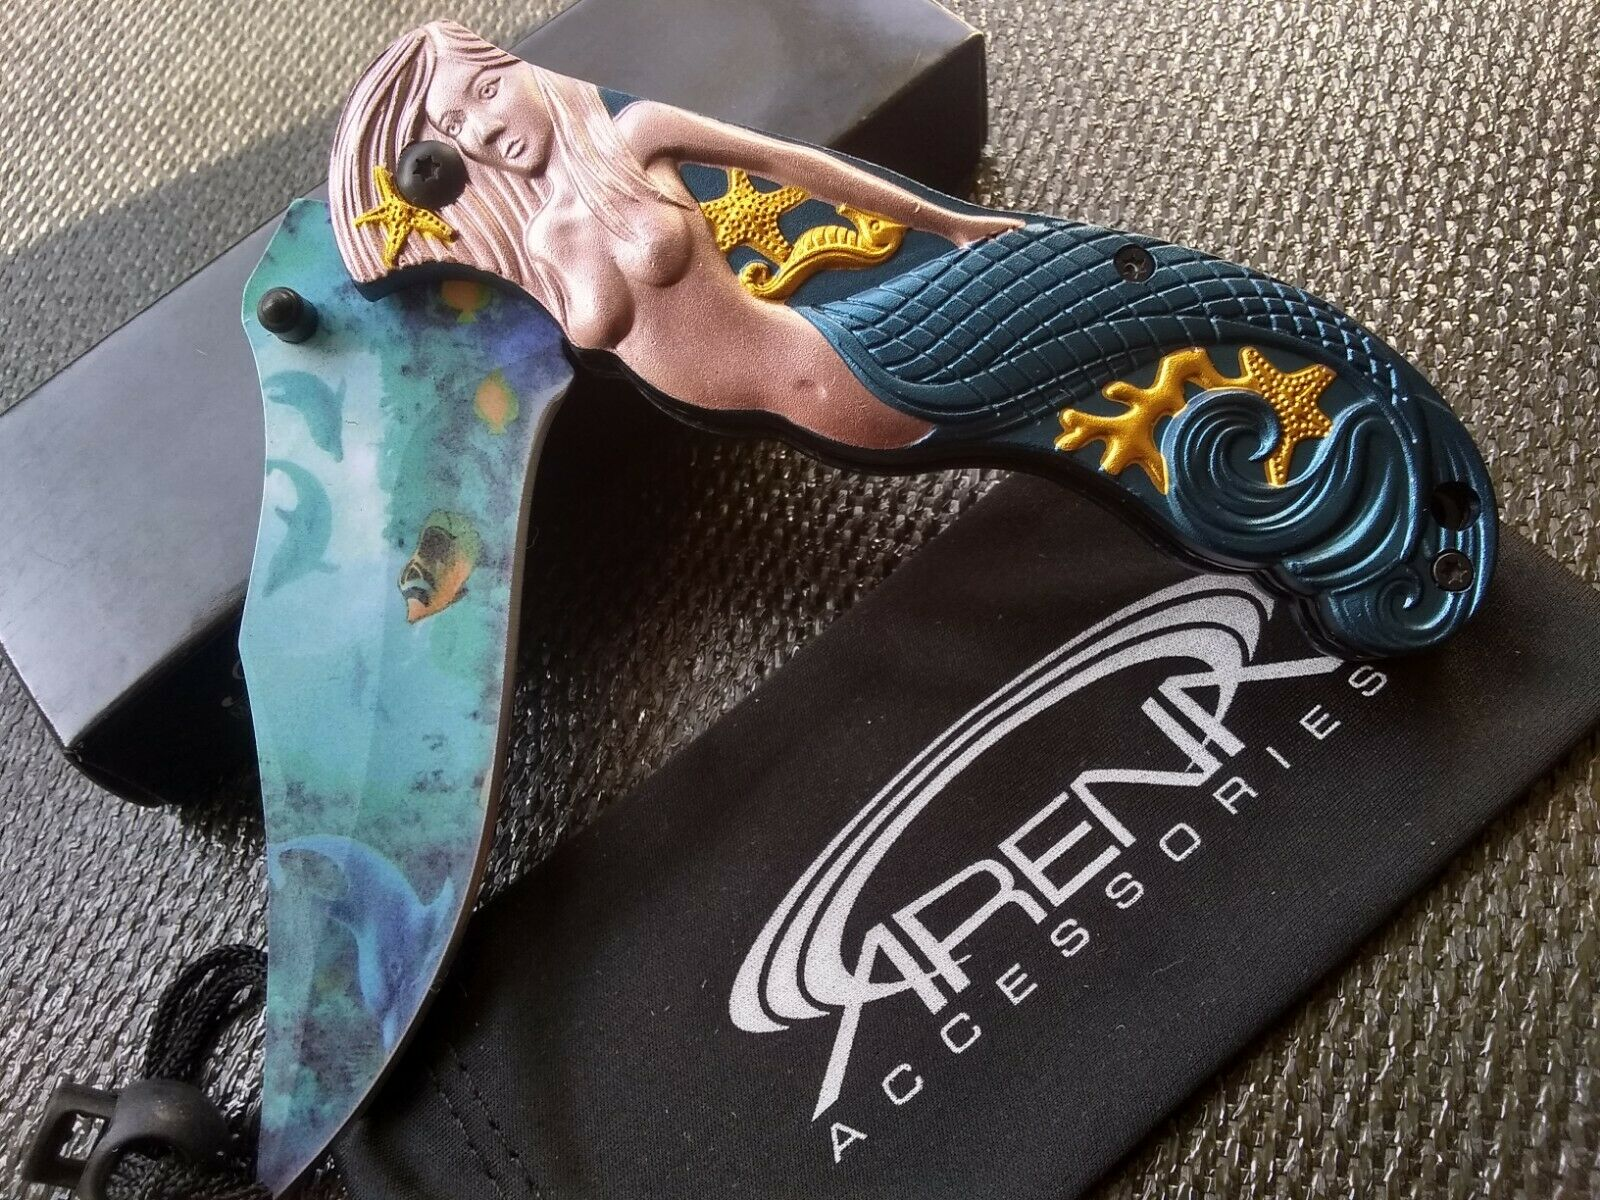 Mermaid 3D Sculpted Little Ariel Pocket Knife Womens Blue Sea Dolphin Blade EDC